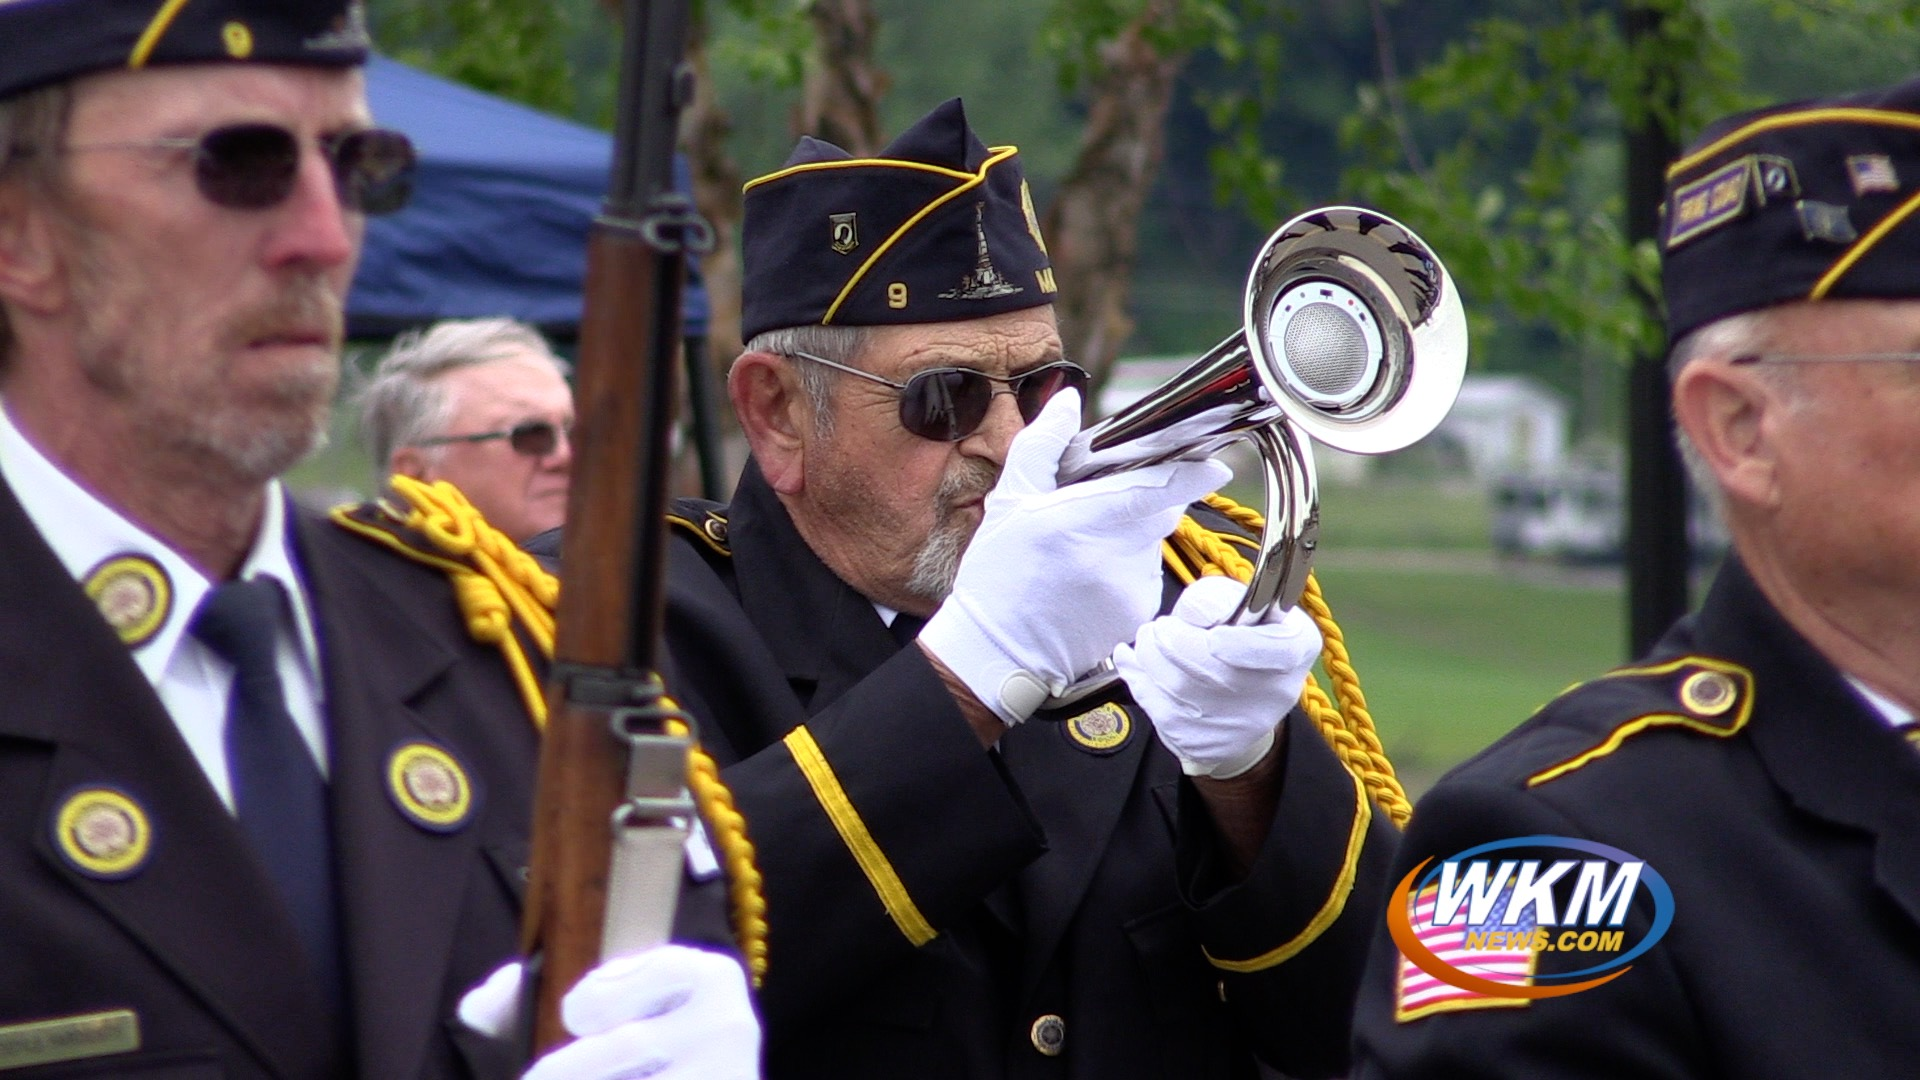 Madison Car Show Celebrates Veterans for Memorial Day Weekend